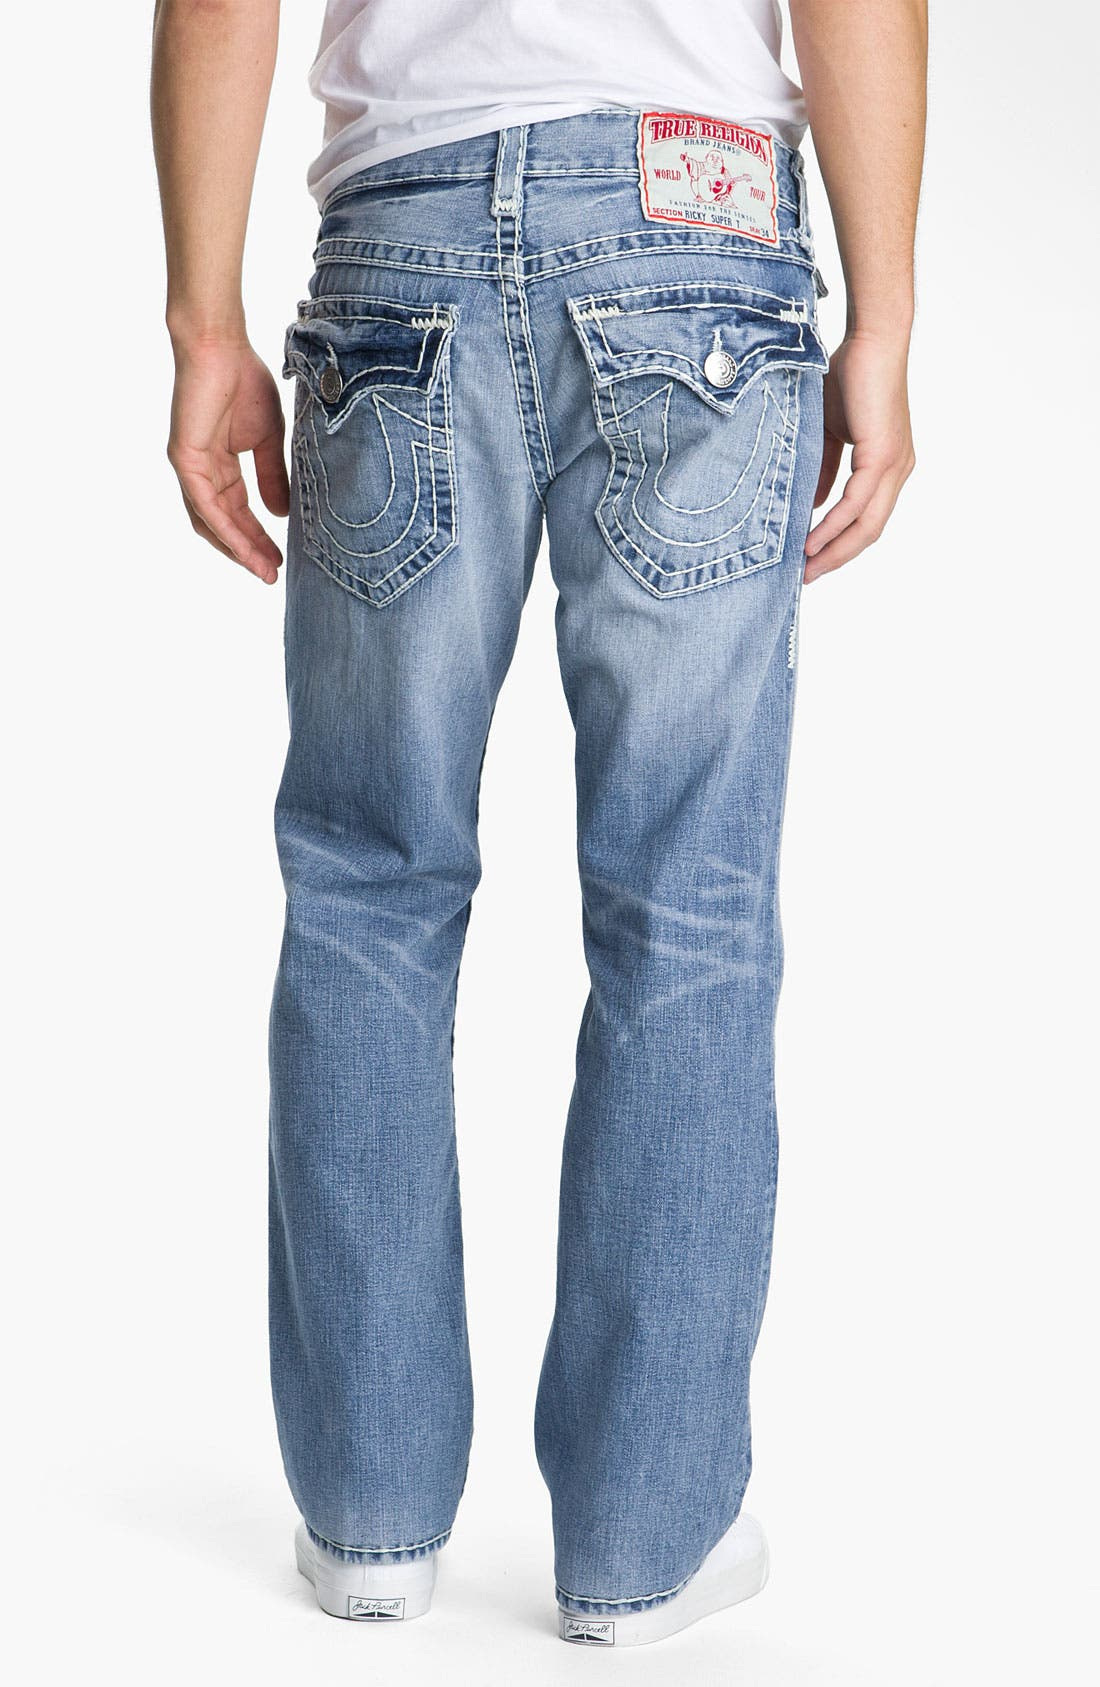 Main Image - True Religion Brand Jeans 'Ricky - Natural Super T' Straight Leg Jeans (Medium Drifter)